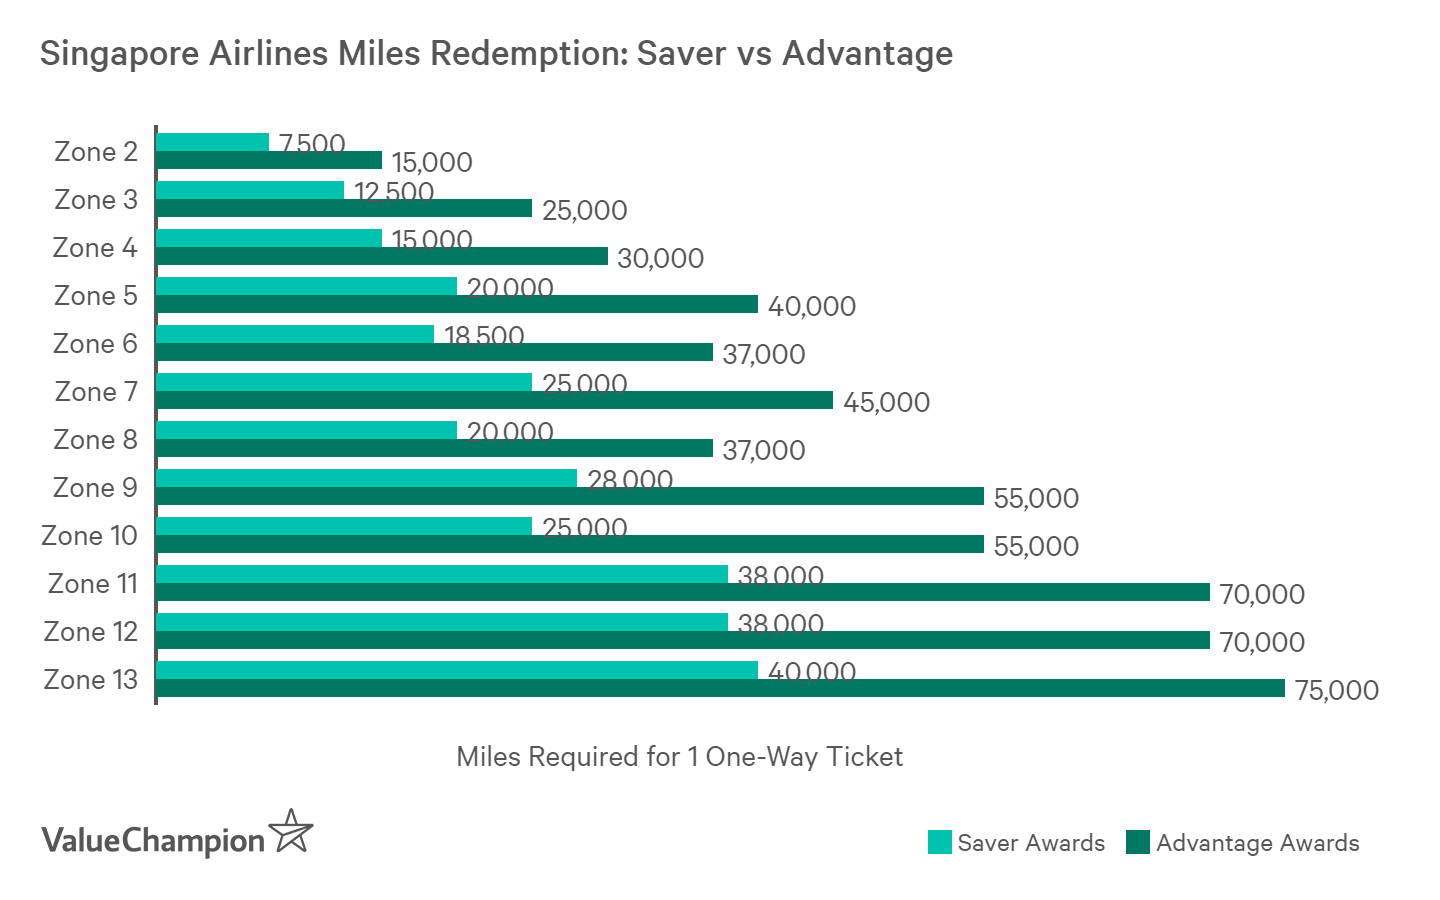 Saver Awards require half as many miles as Advantage Awards for redemption